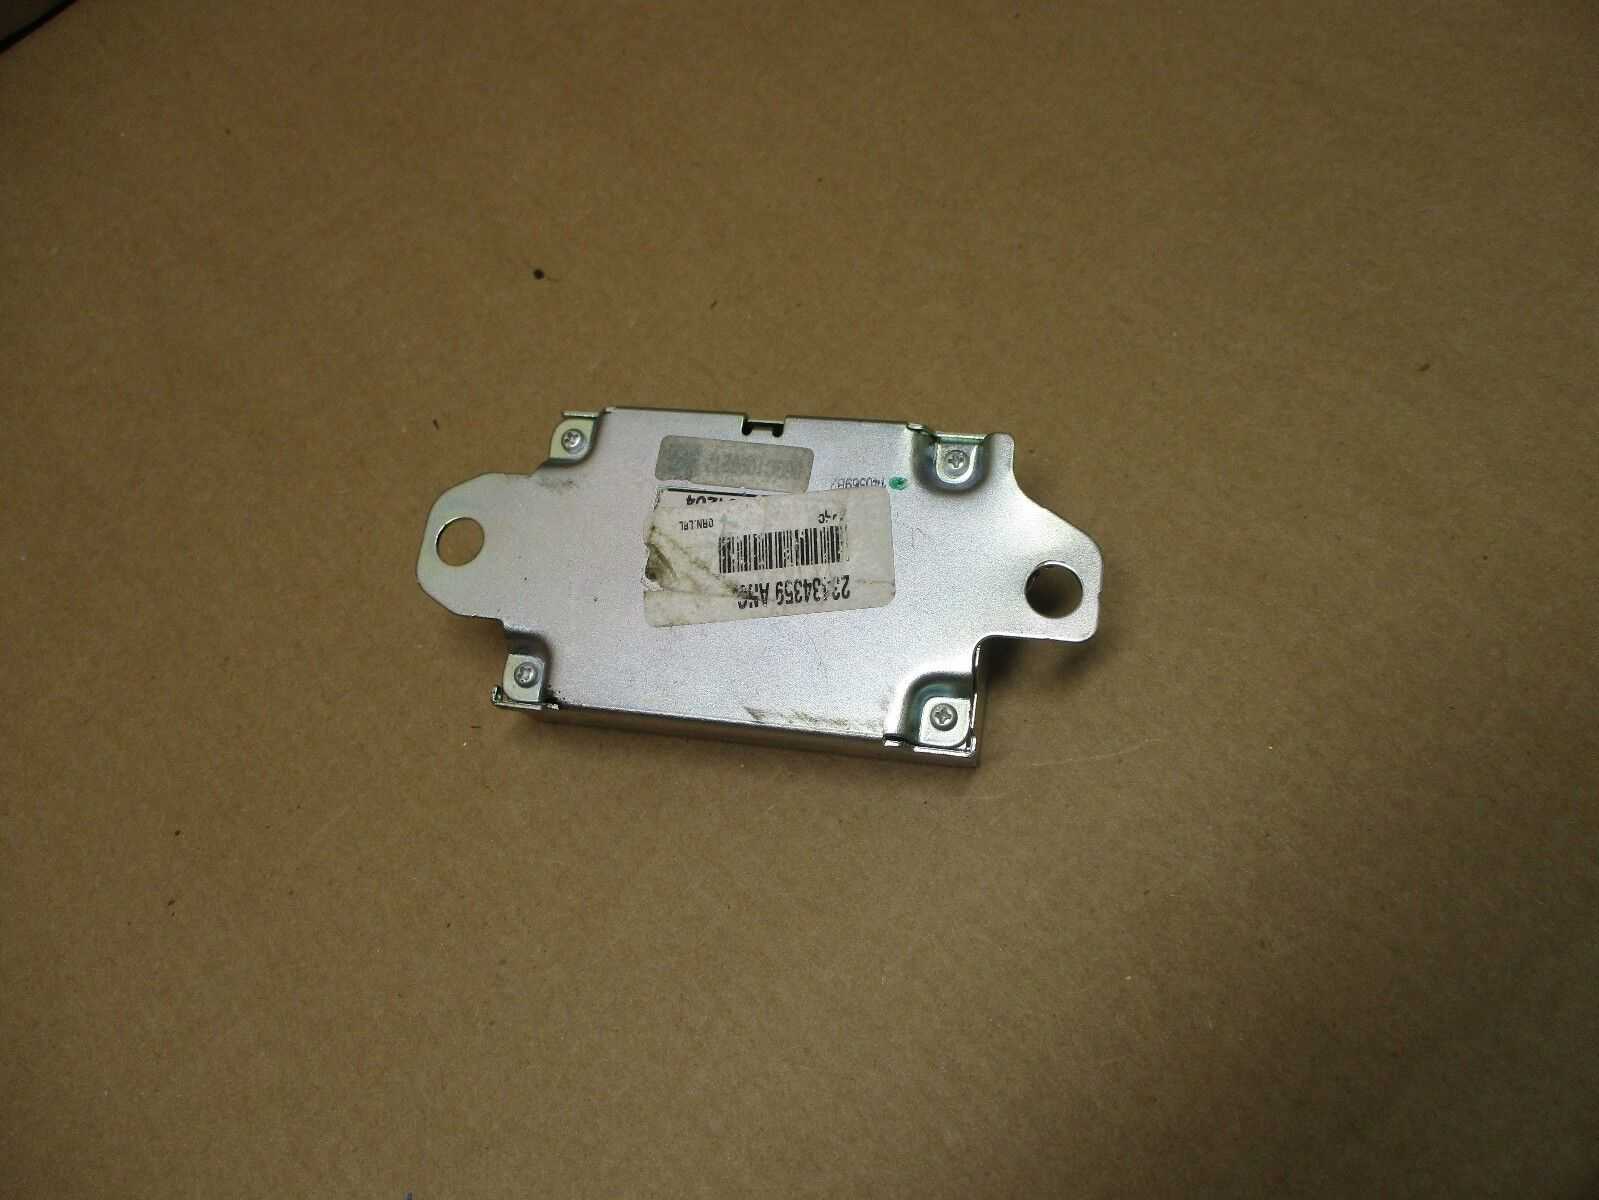 Used 2015 Chevrolet Equinox Engine Computers For Sale Chevy Fuse Box 22922727 2014 Active Noise Control Module Computer 1545 Mod